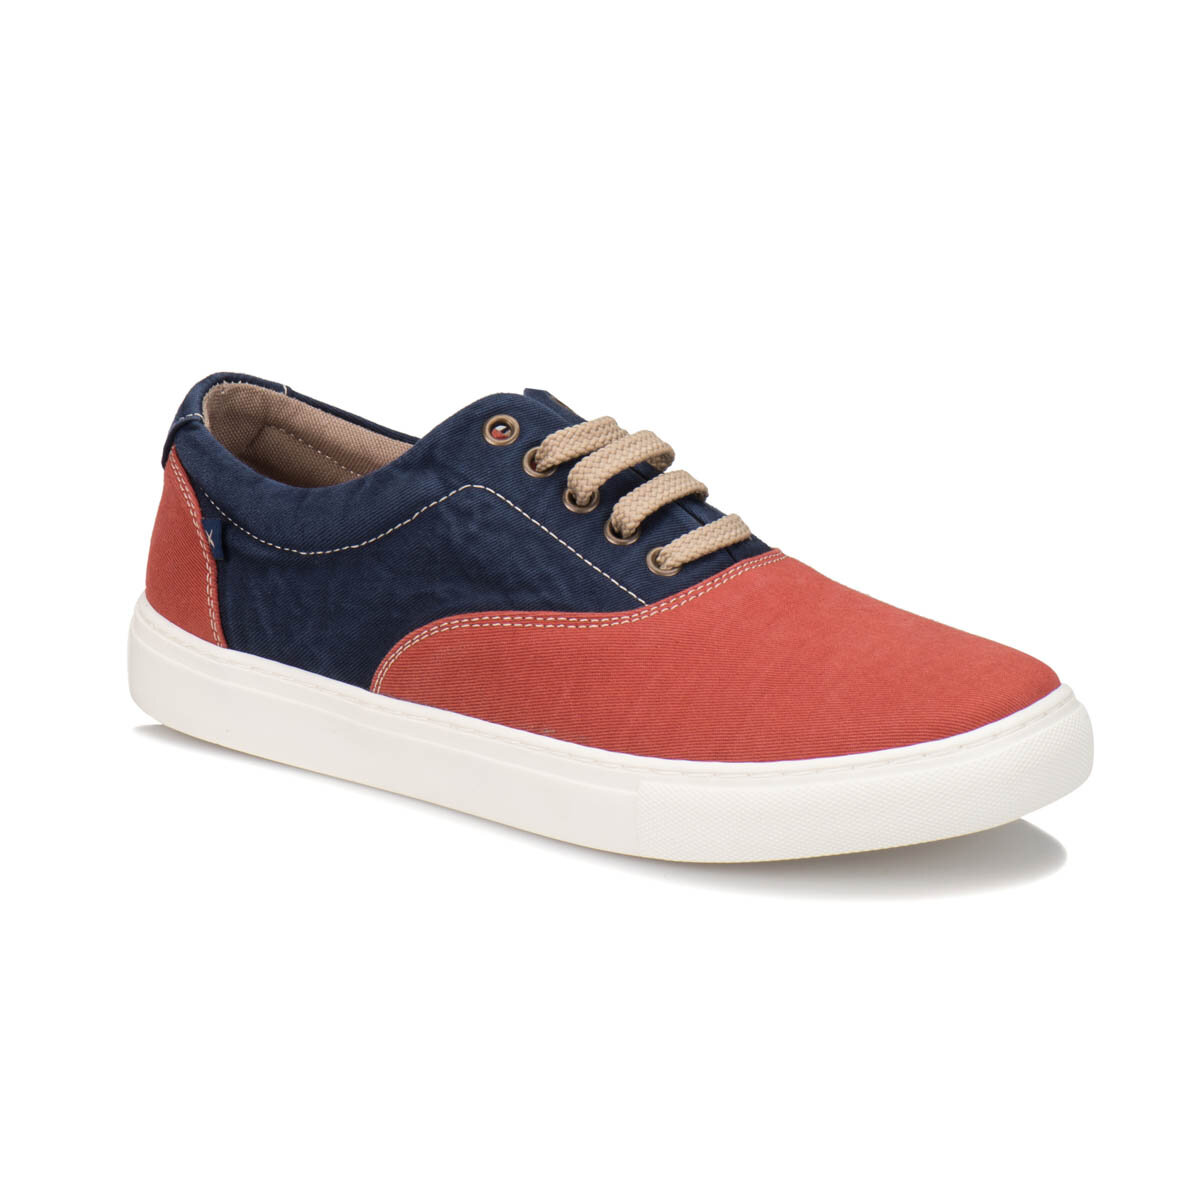 FLO ASTON Red Men 'S Shoes KINETIX